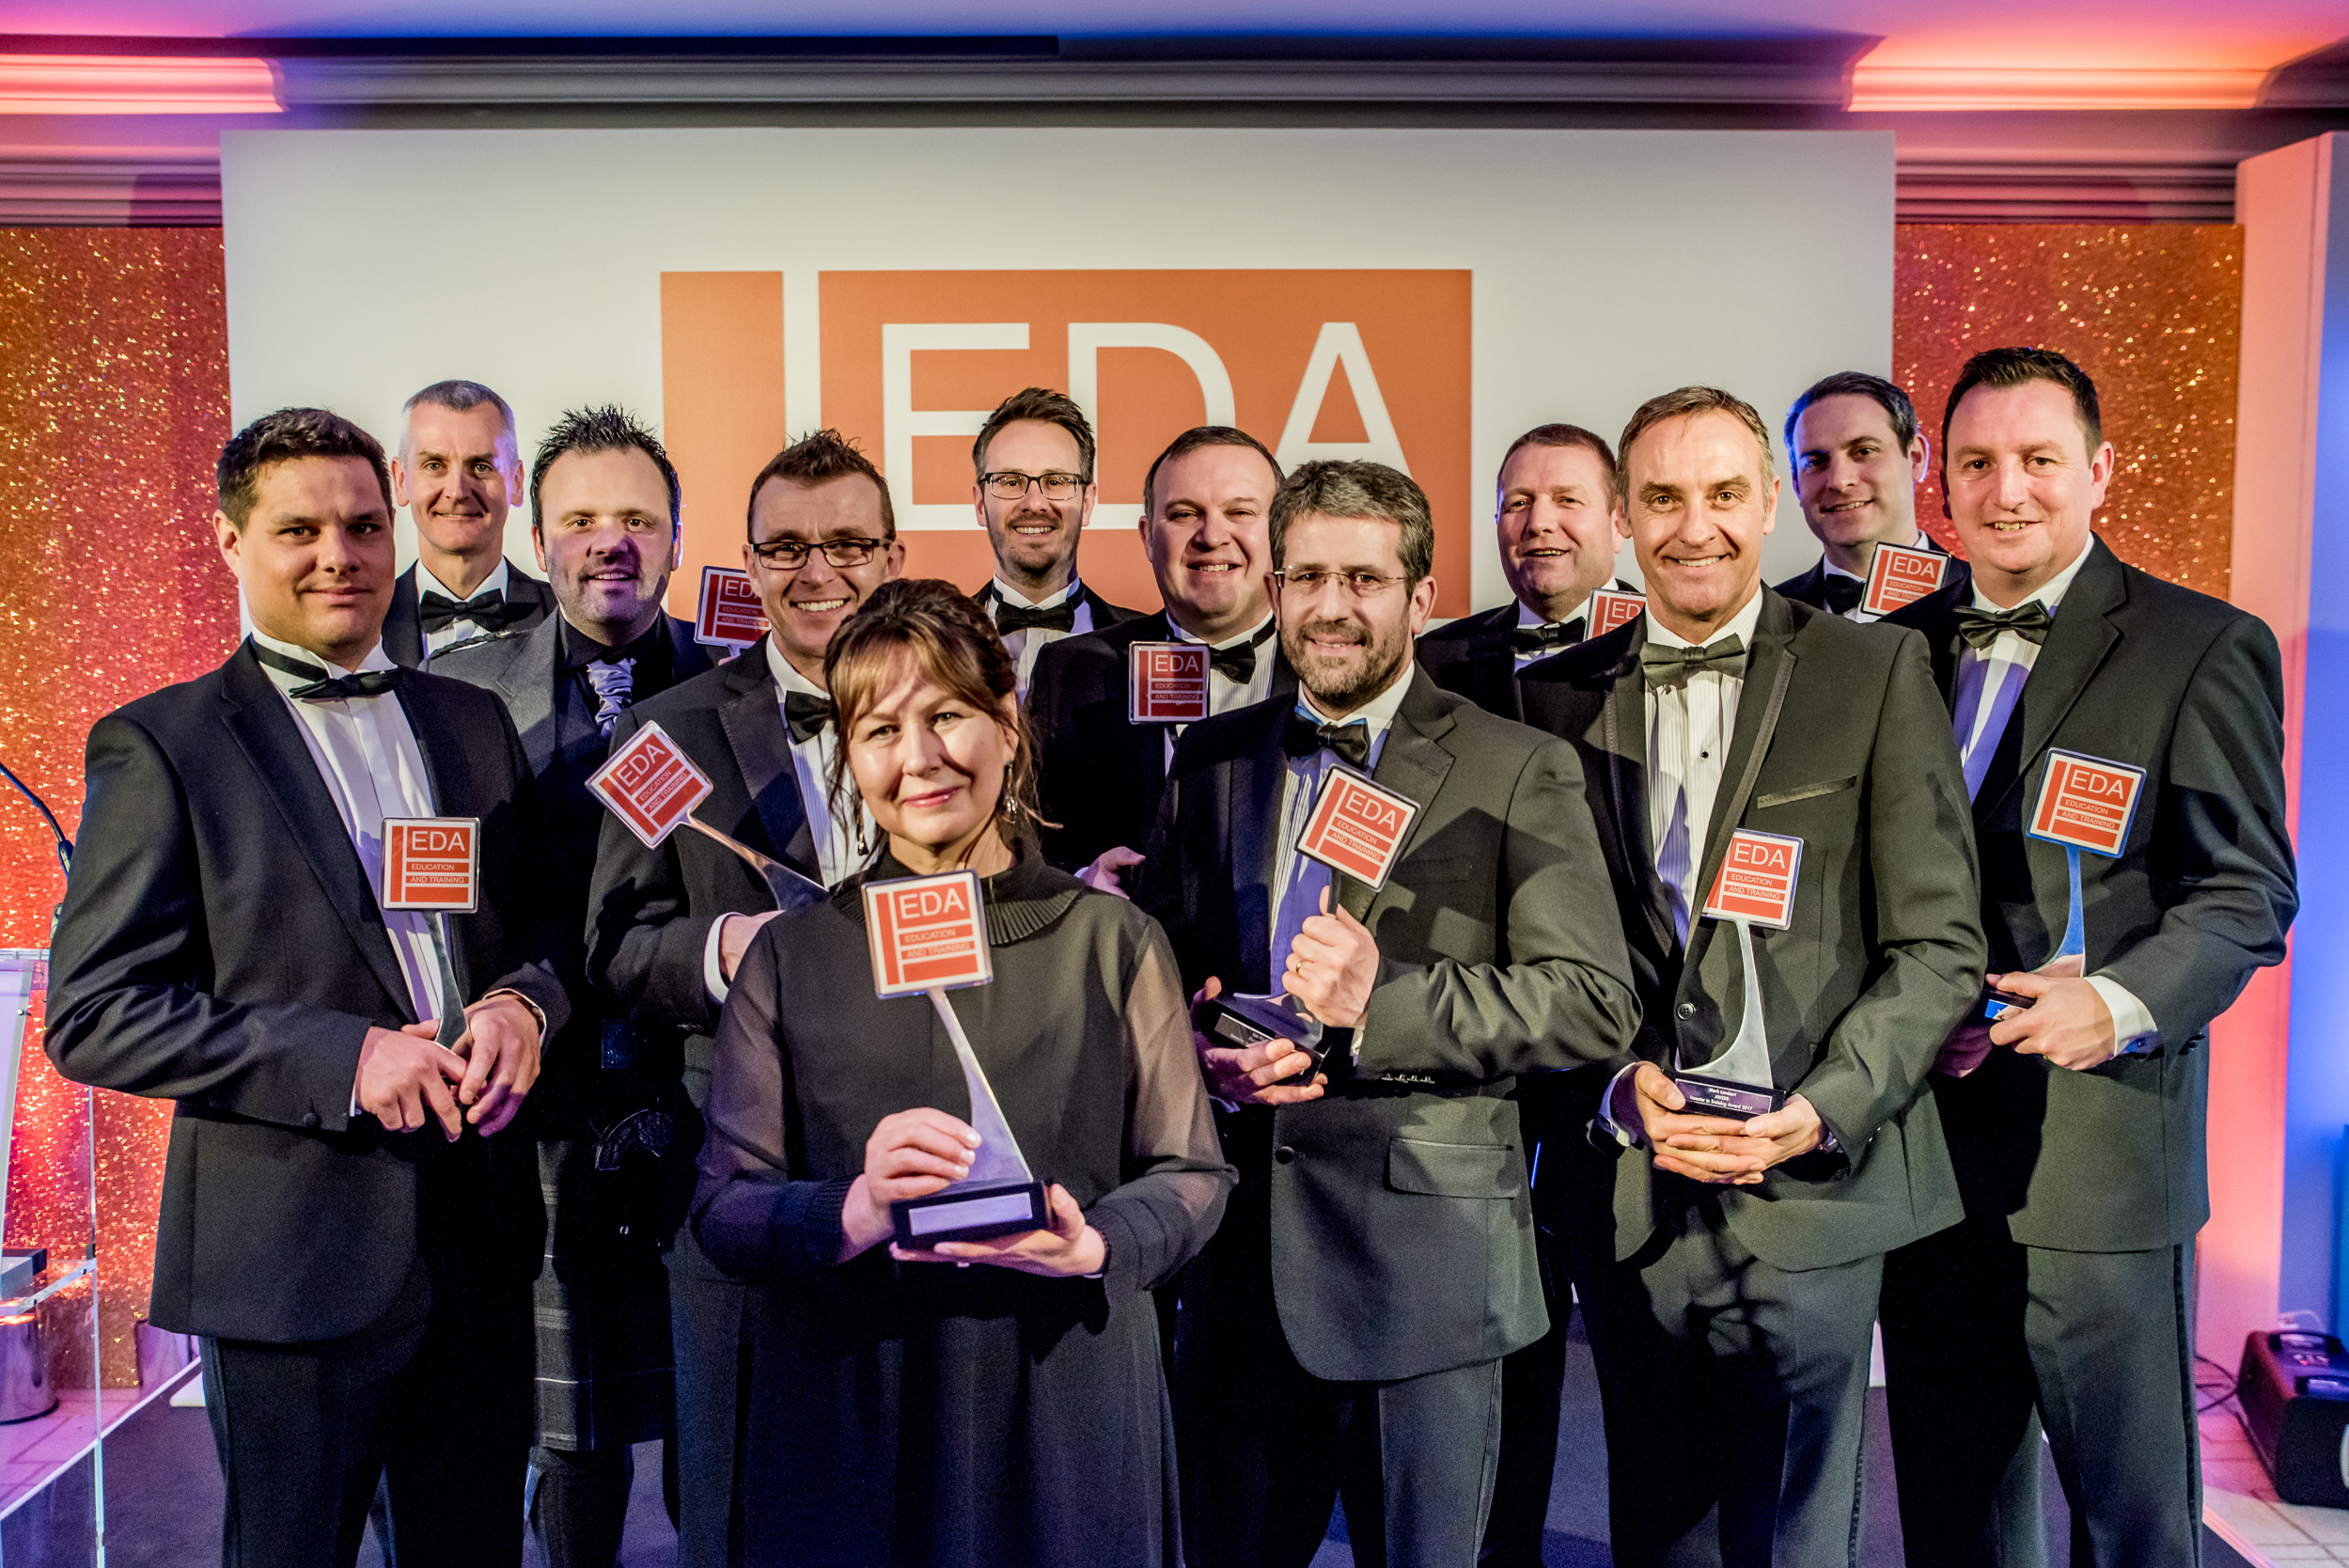 eda annual awards 2017 manager winners electrical contracting news